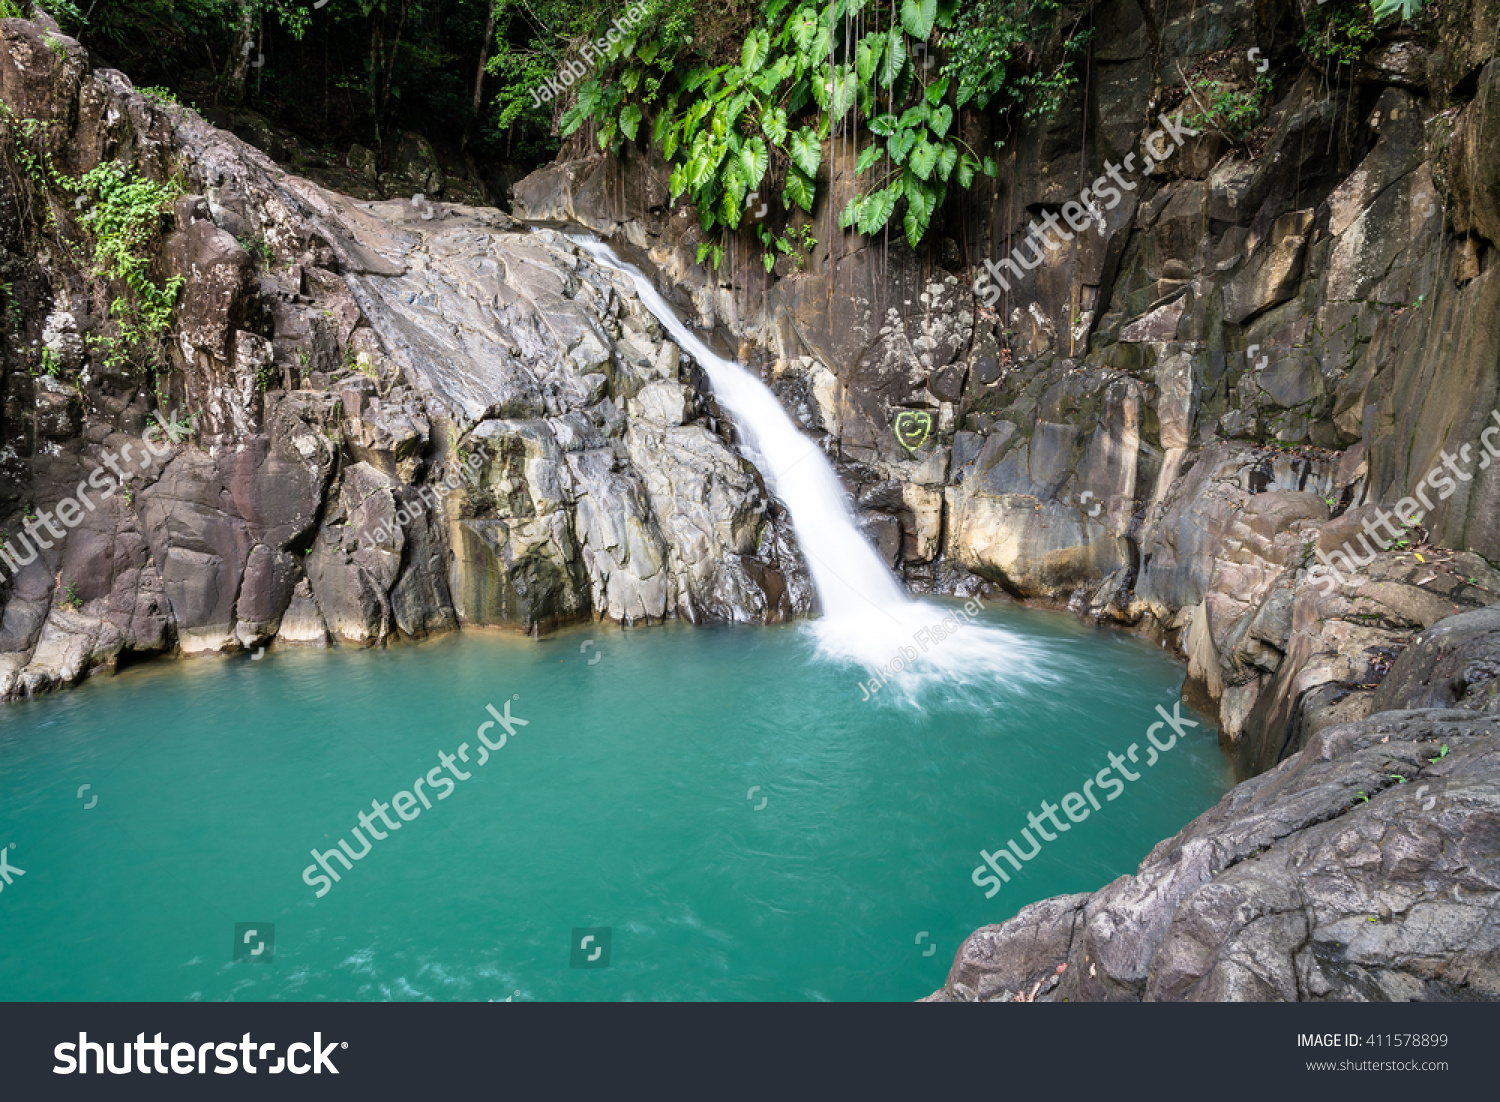 turquoise pool waterfall saut dacomat guadeloupe stock photo 411578899 shutterstock. Black Bedroom Furniture Sets. Home Design Ideas